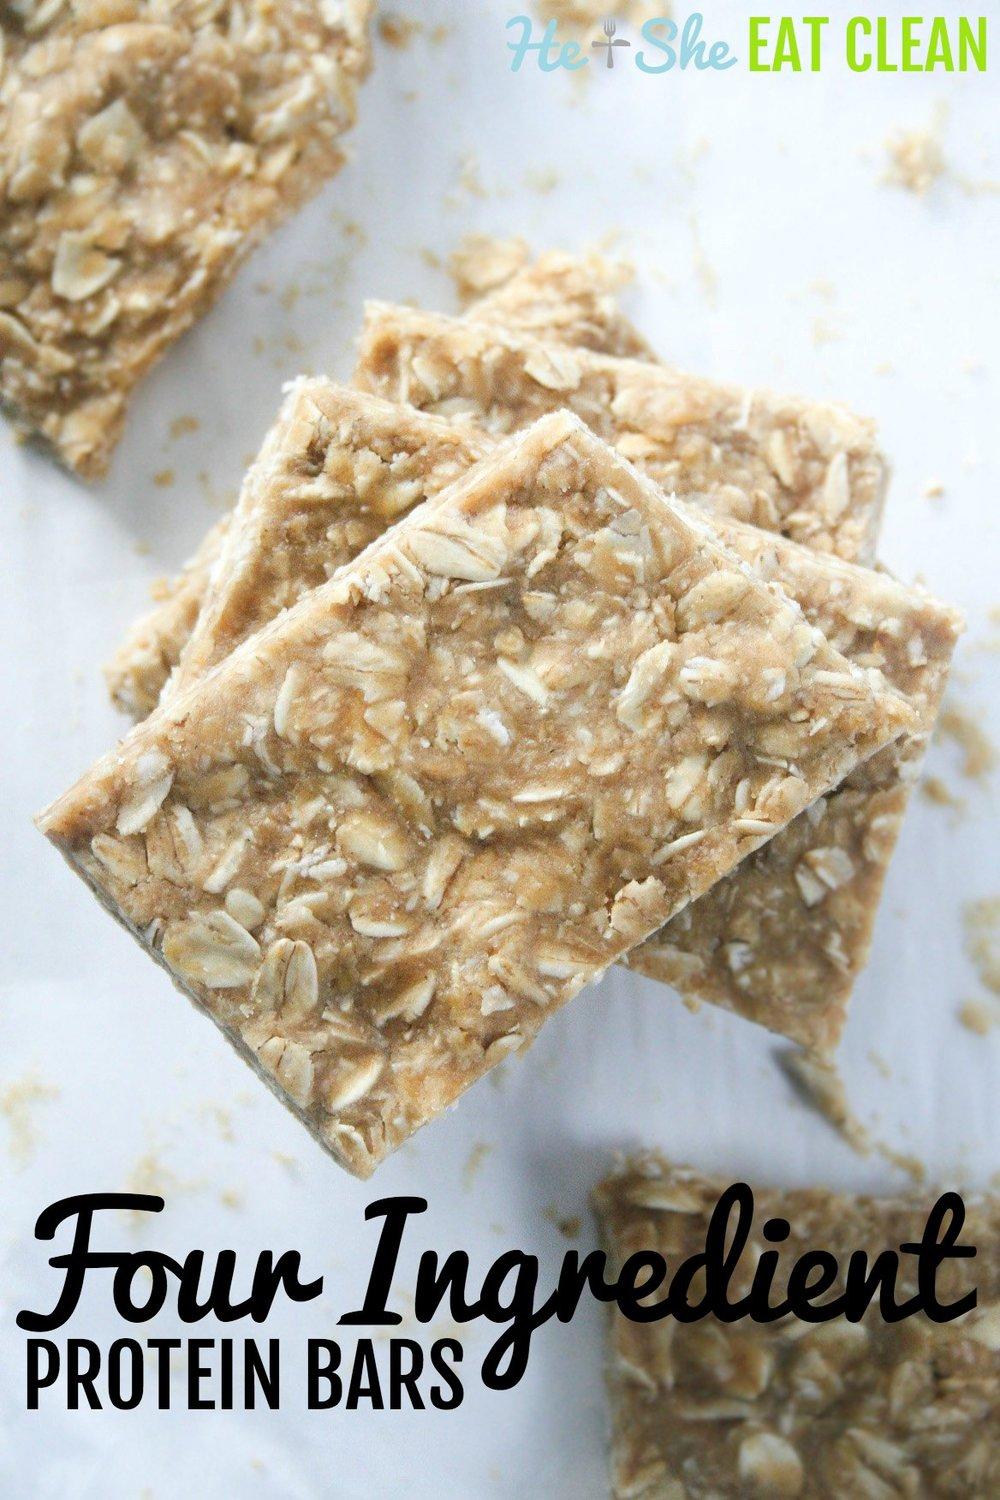 Clean Eating Recipe: Four Ingredient Protein Bars